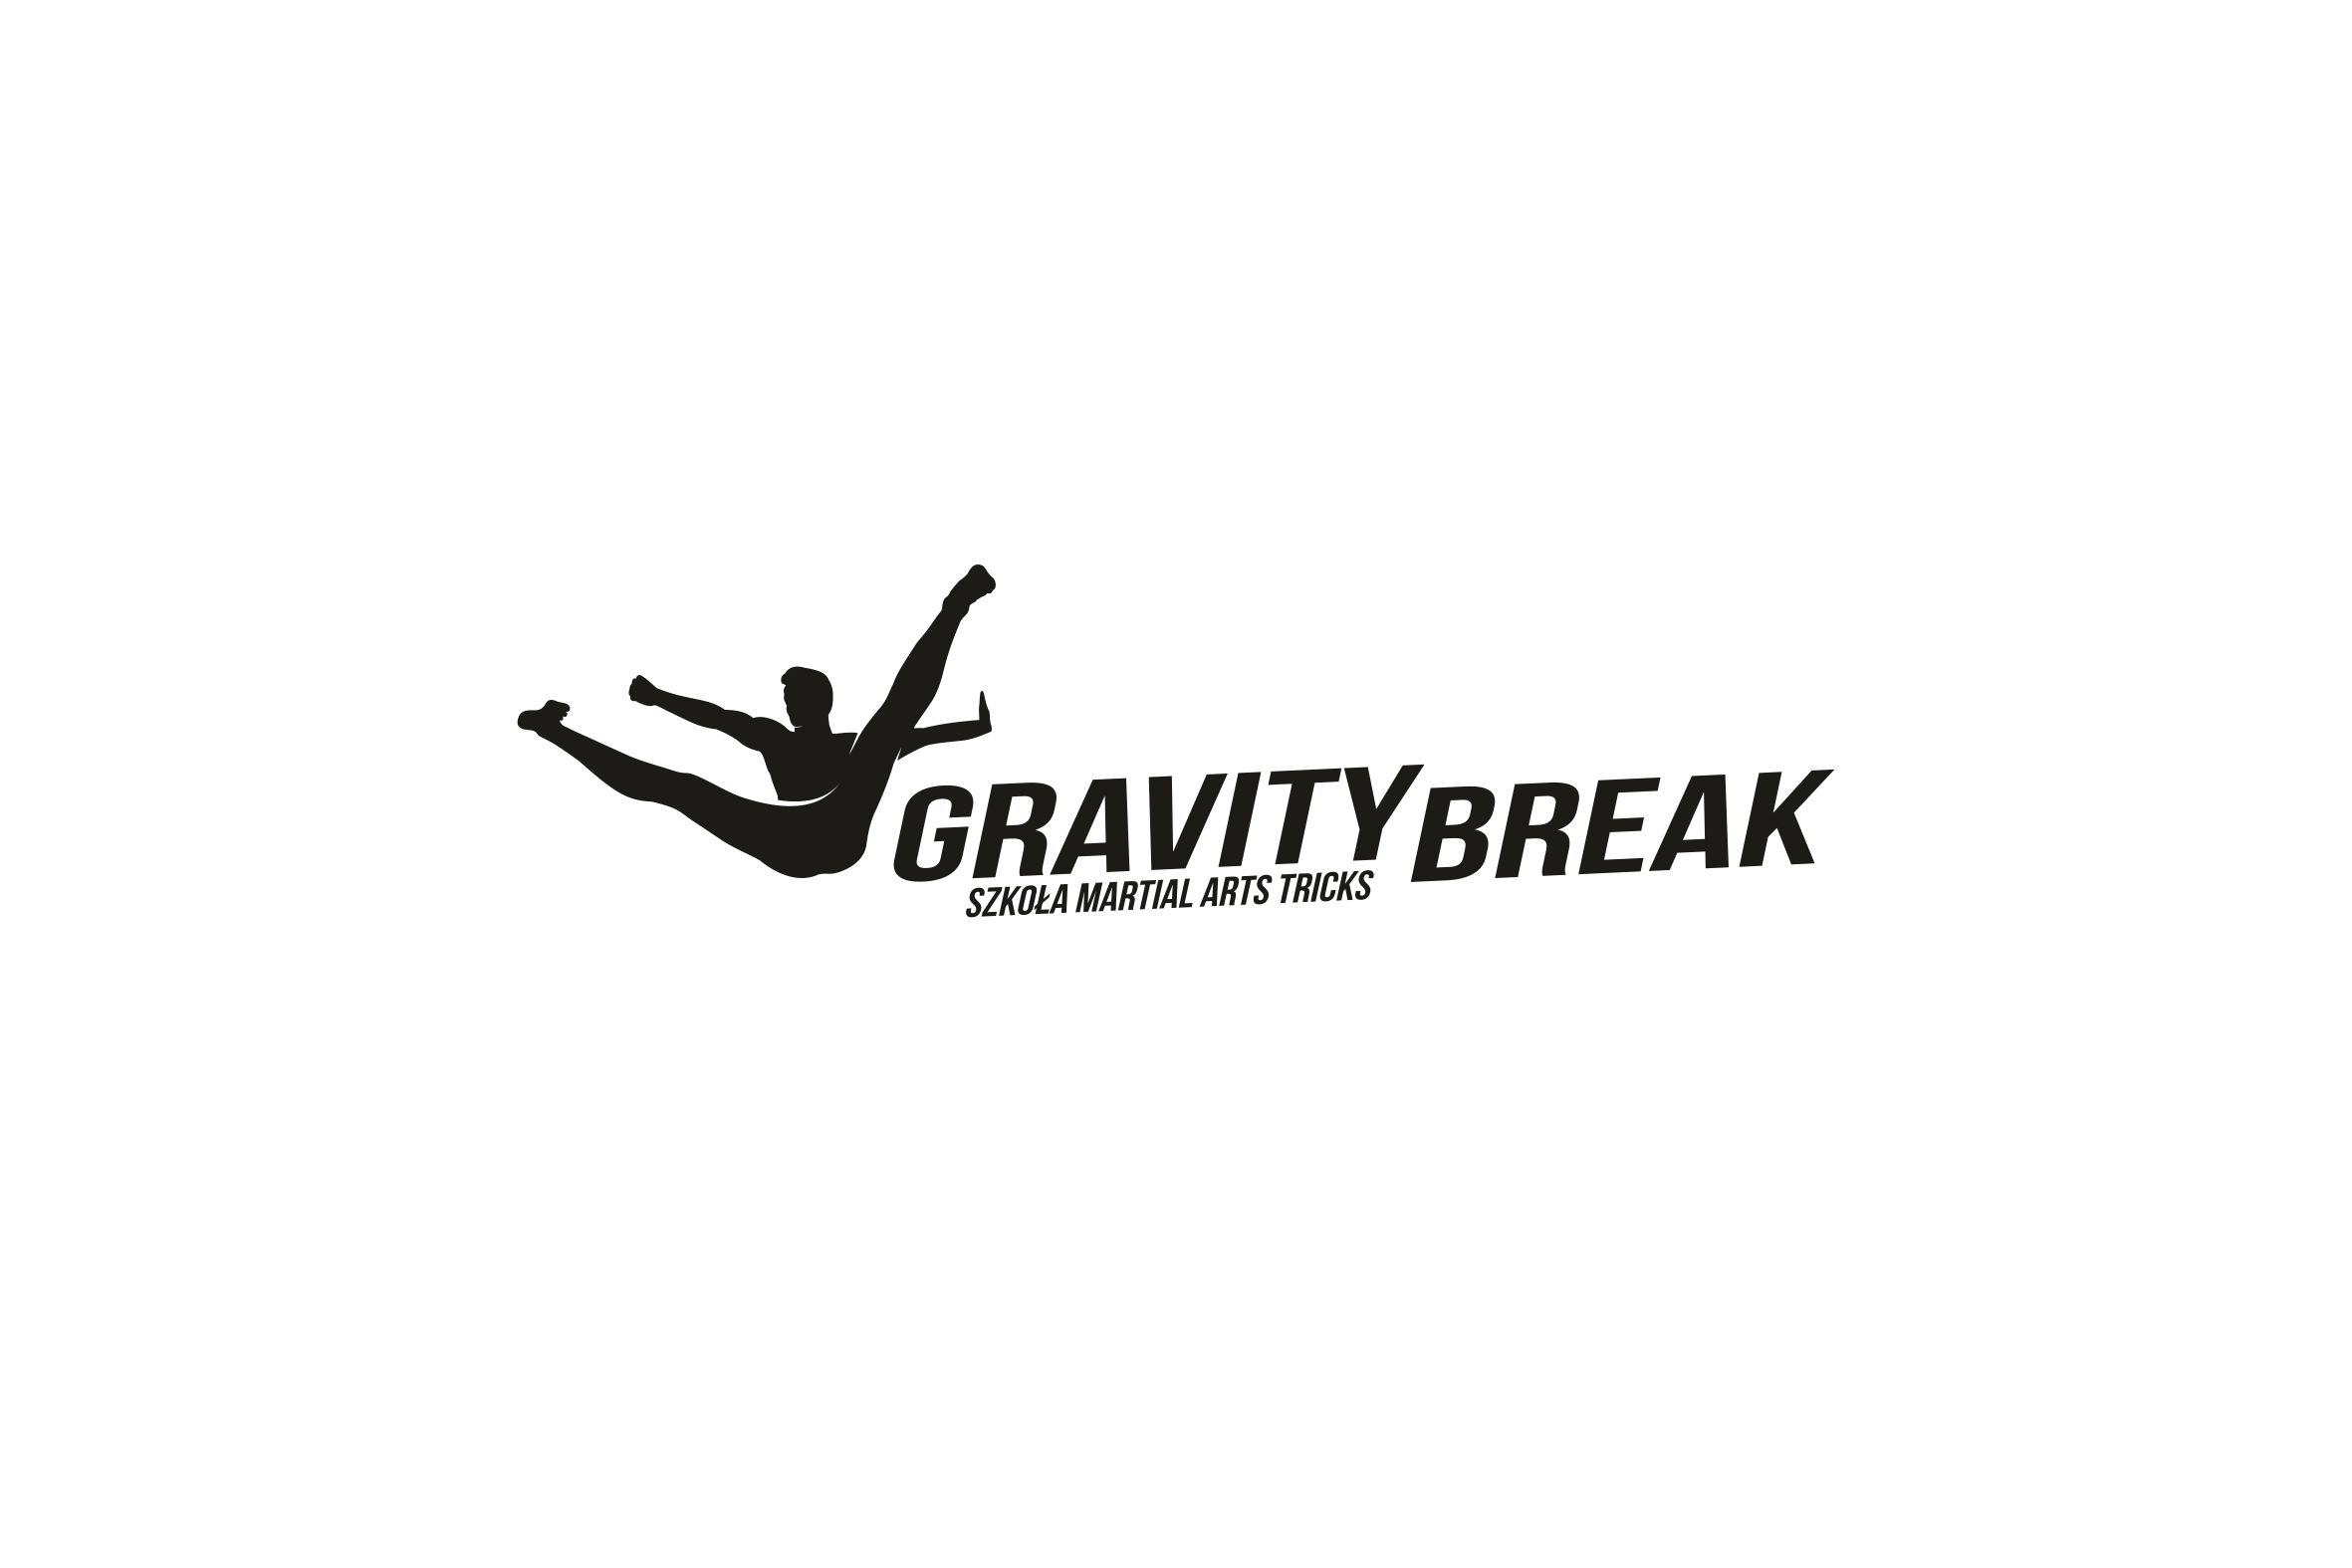 GRAVITY BREAK